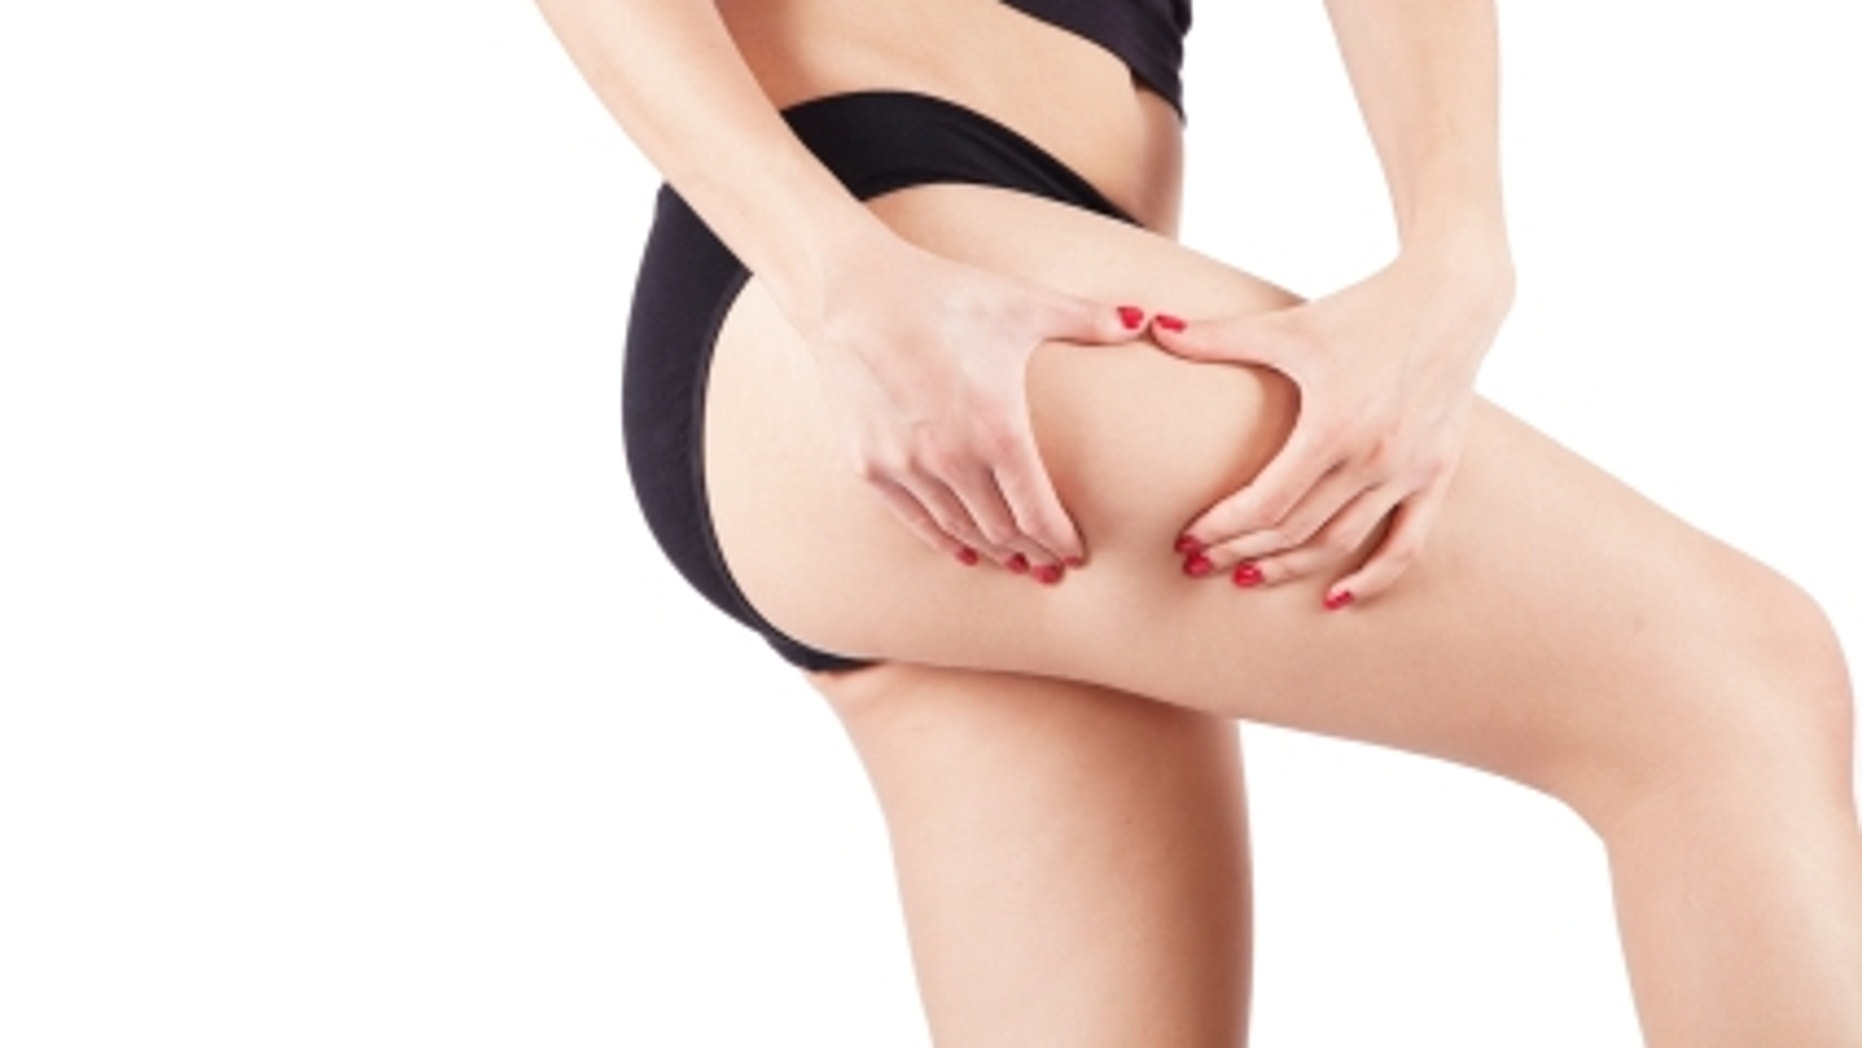 Do this with coffee, say goodbye to cellulite | Fox News